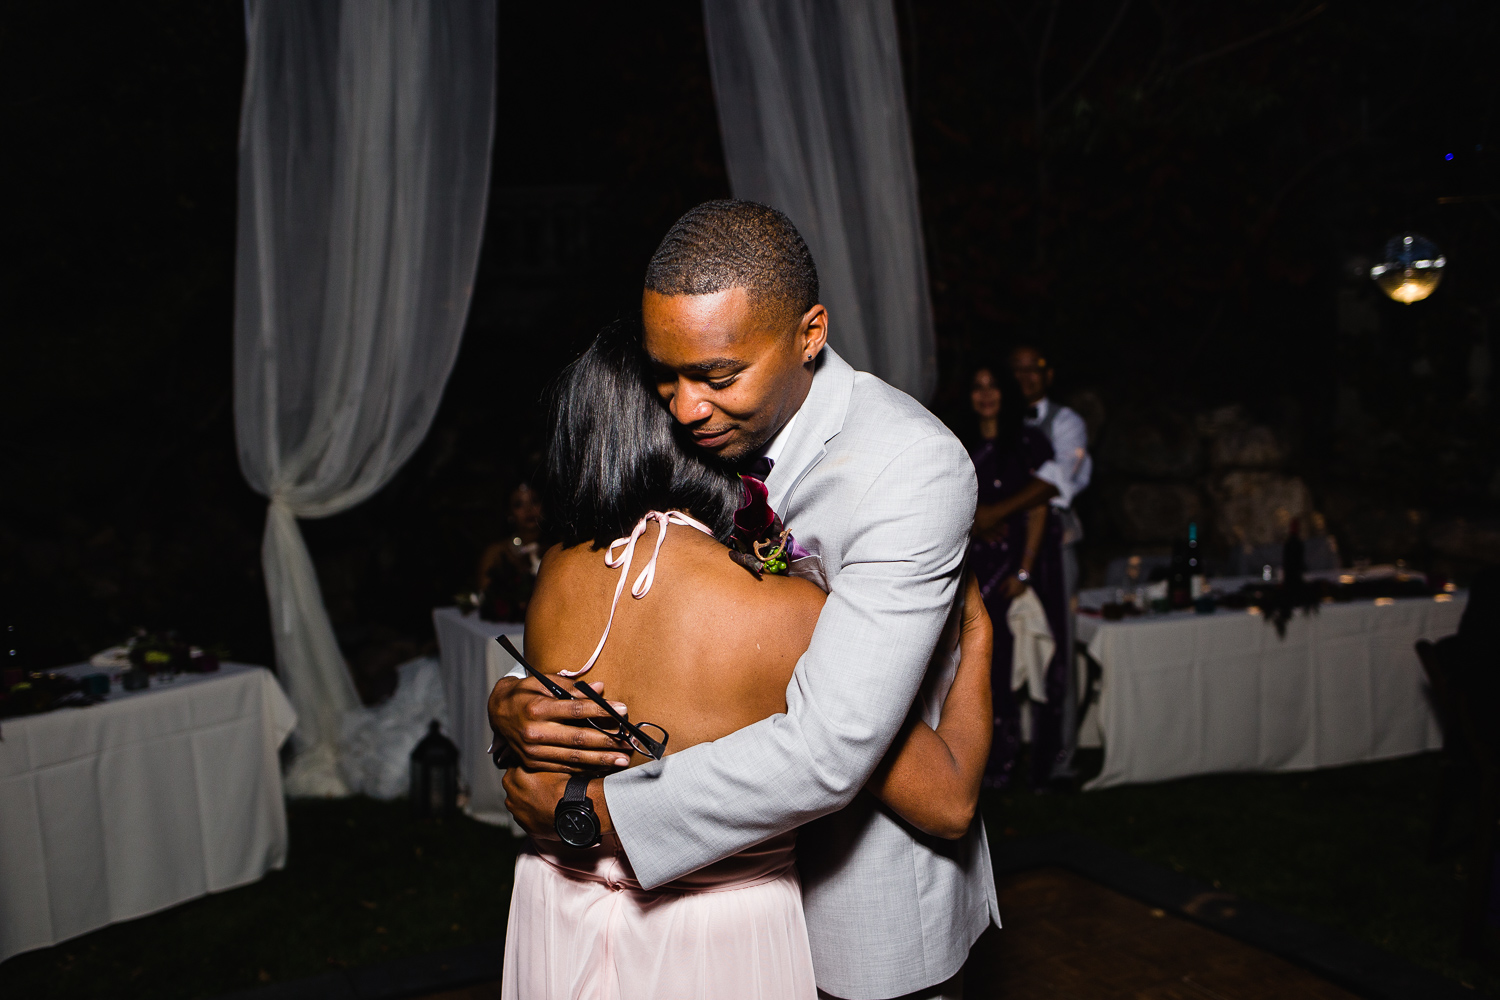 African-American groom and mother dance emotional ethnic wedding